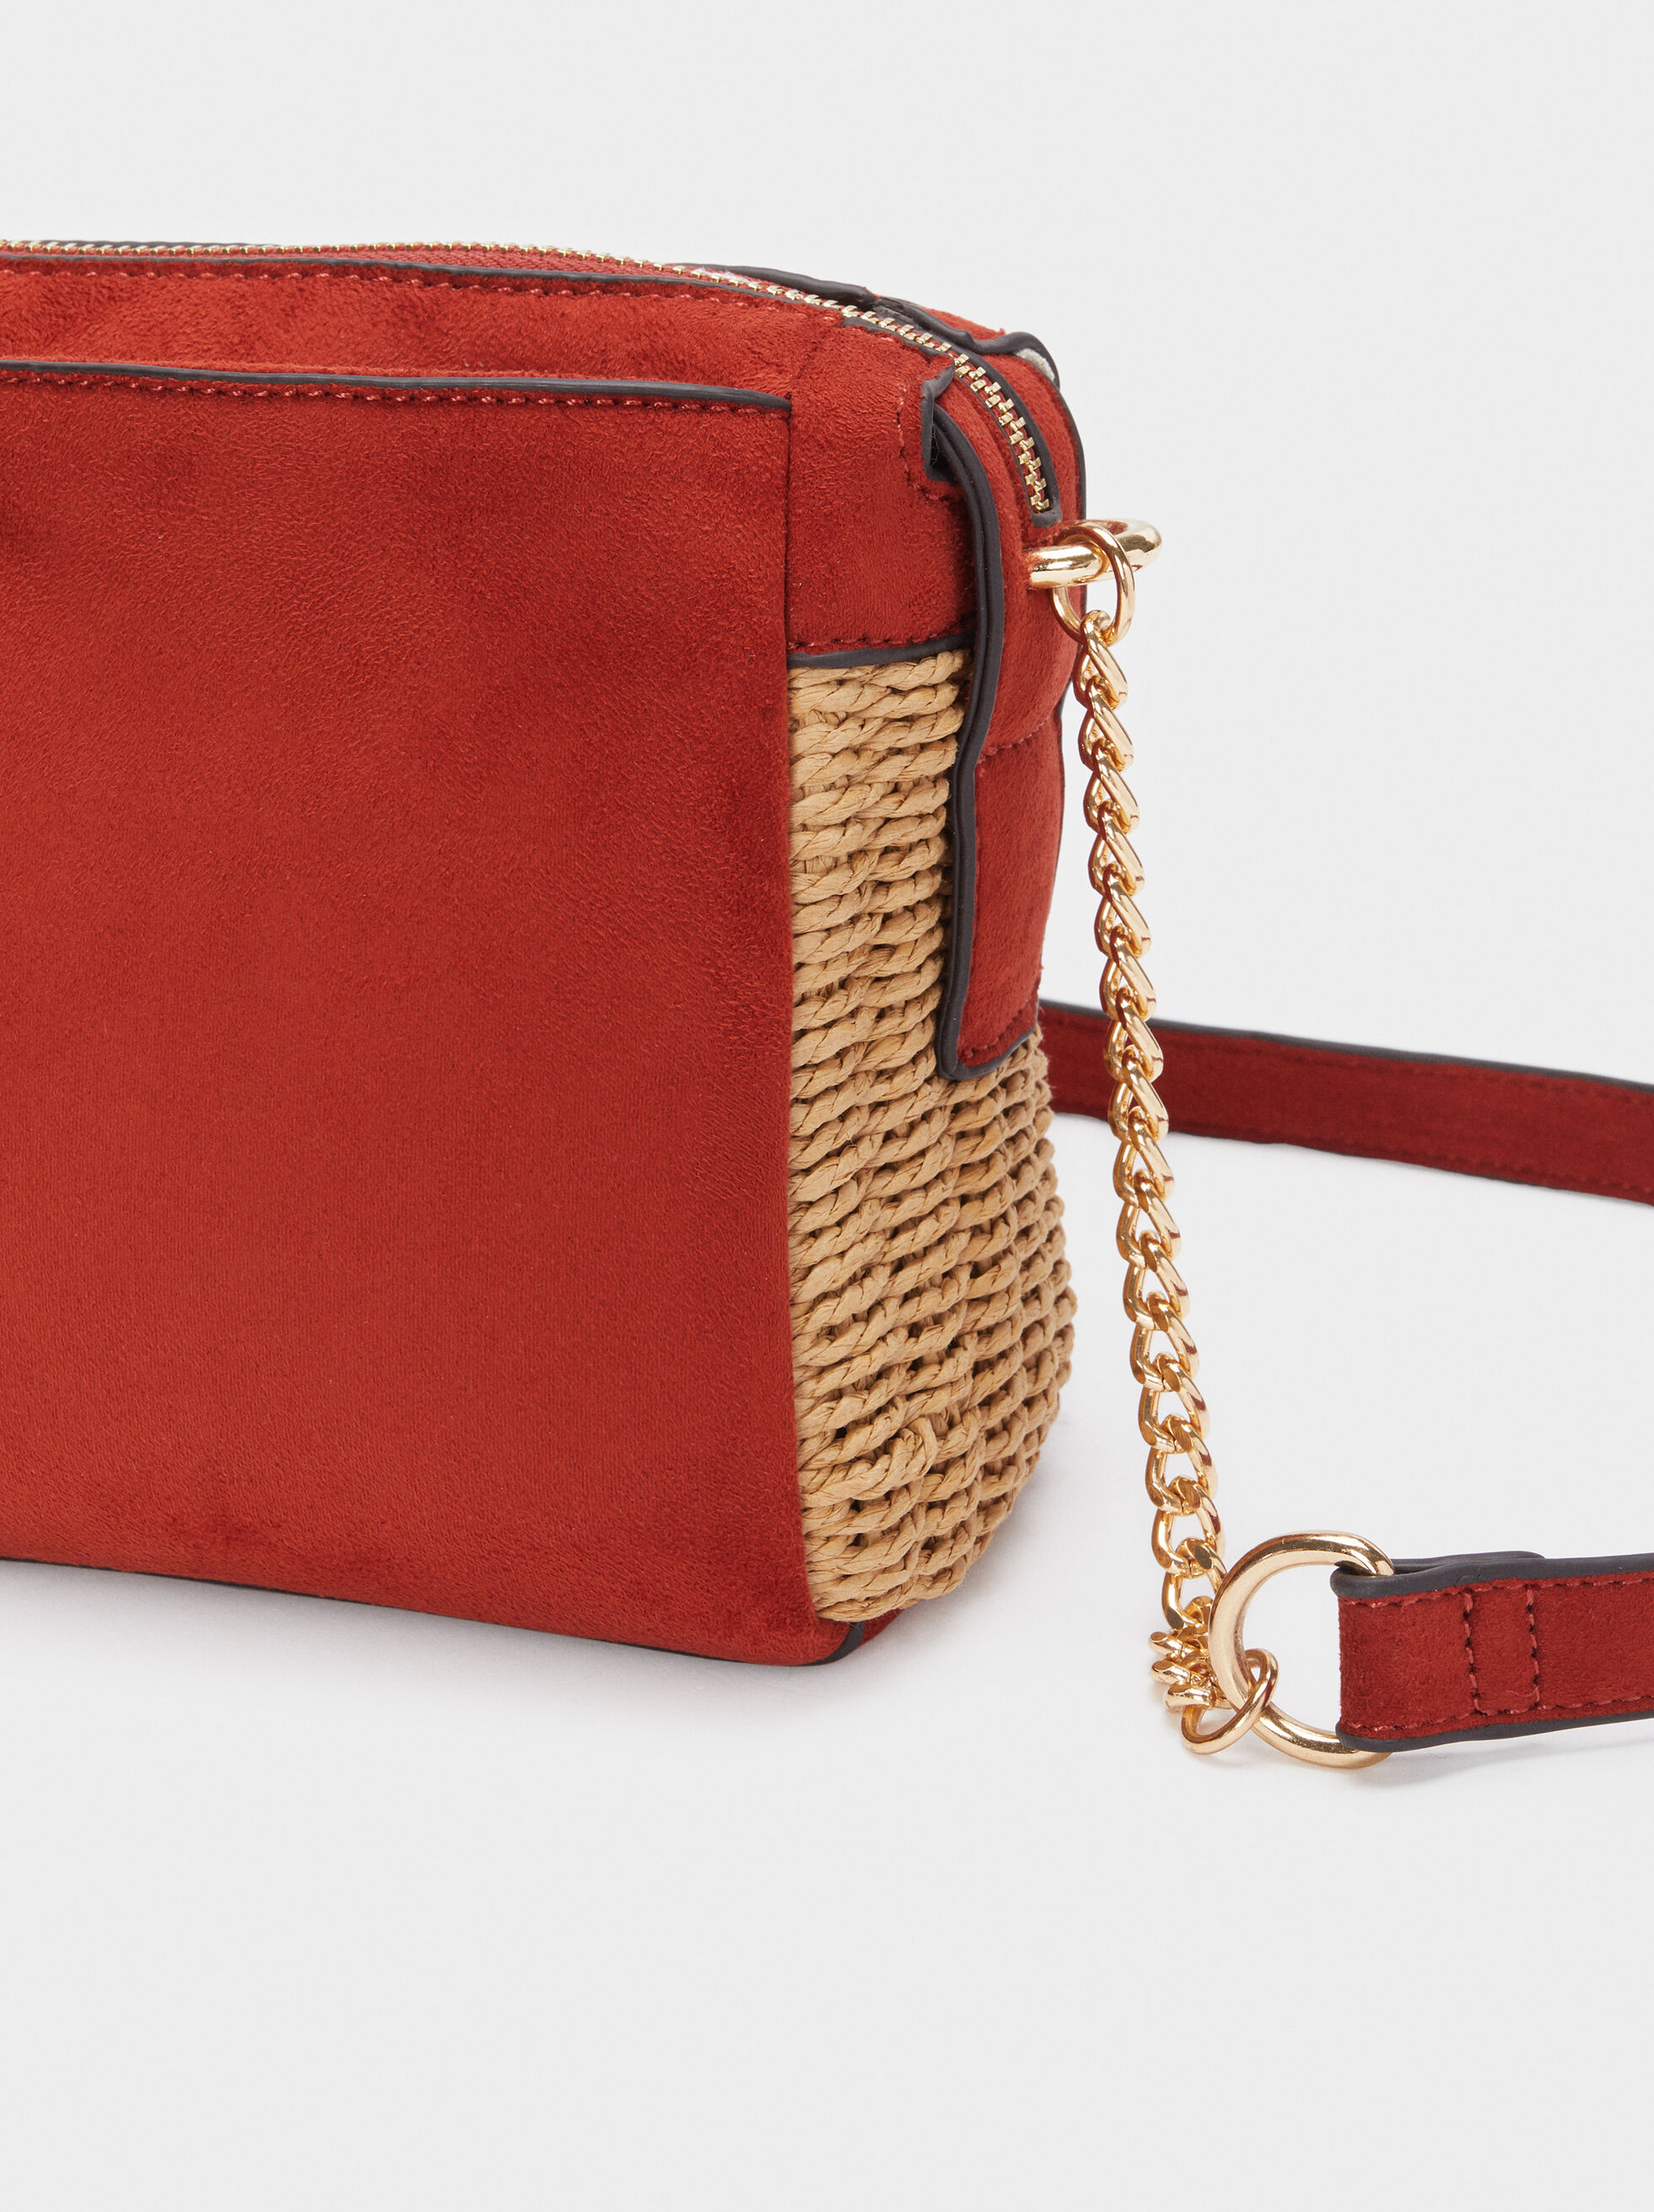 Textured Suede Crossbody Bag, Brick Red, hi-res